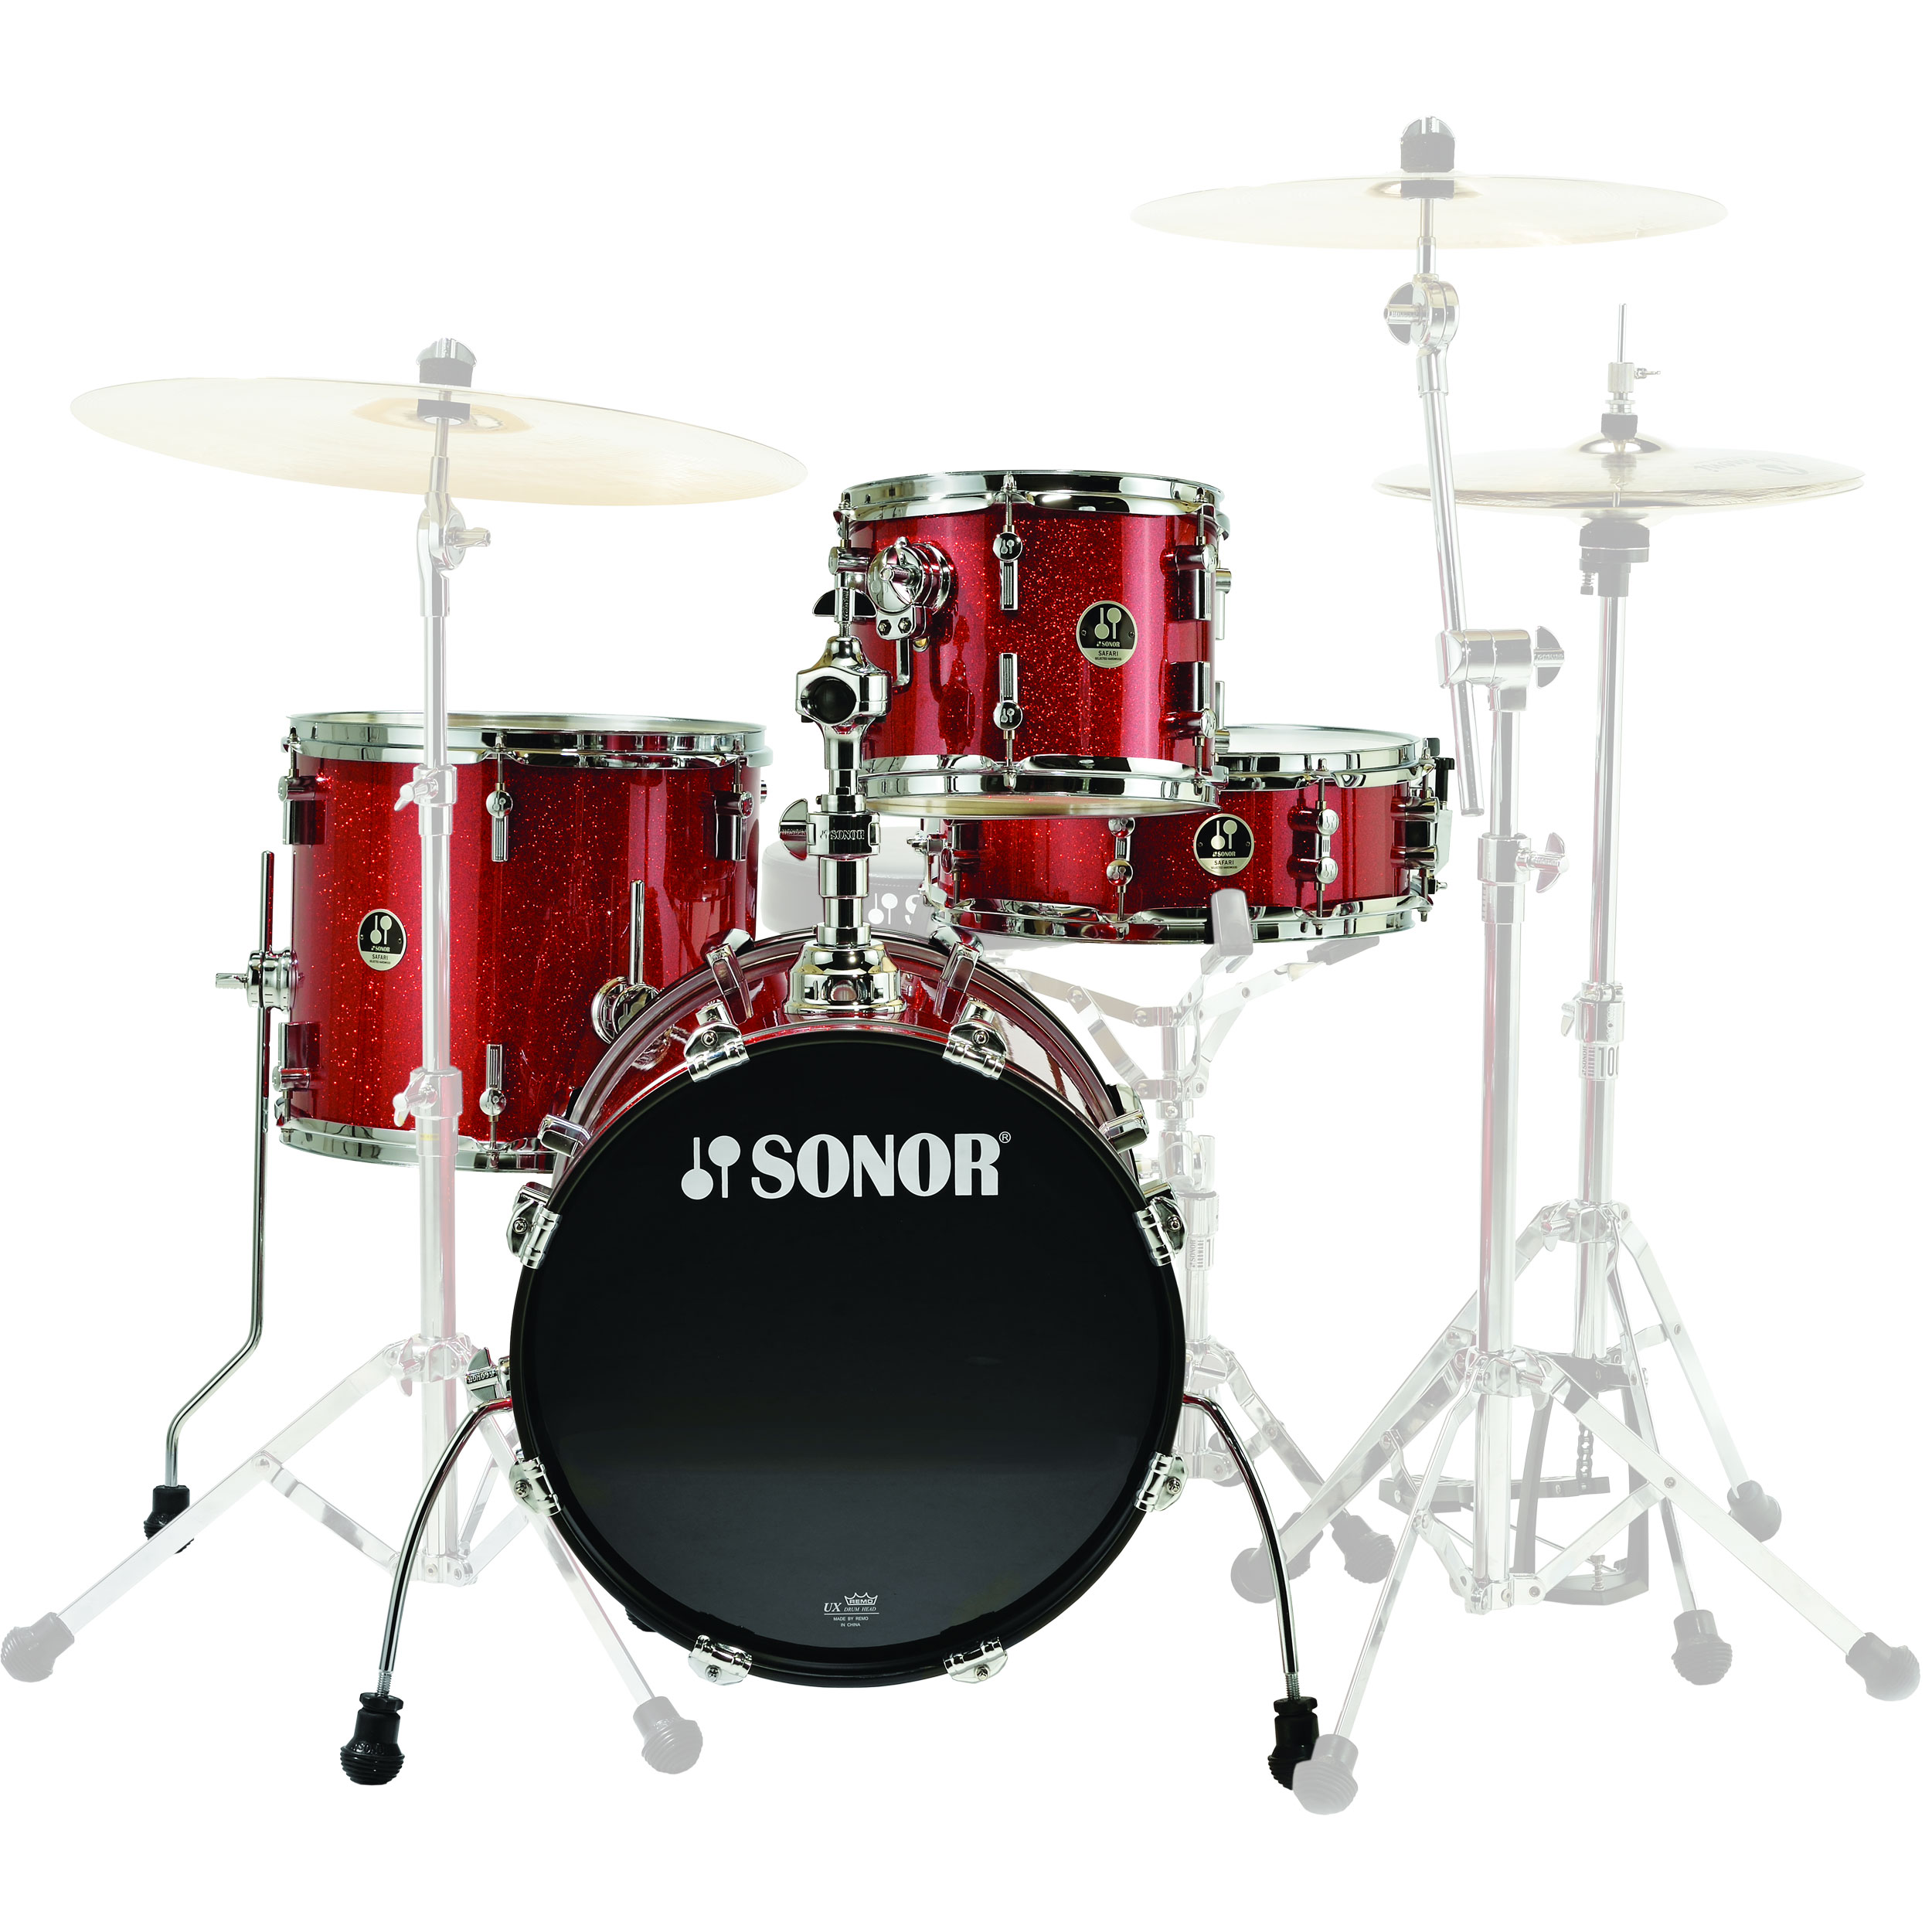 """Sonor Safari 4-Piece Drum Set Shell Pack (16"""" Bass, 10/14"""" Toms, 14"""" Snare) in Red Galaxy Sparkle"""